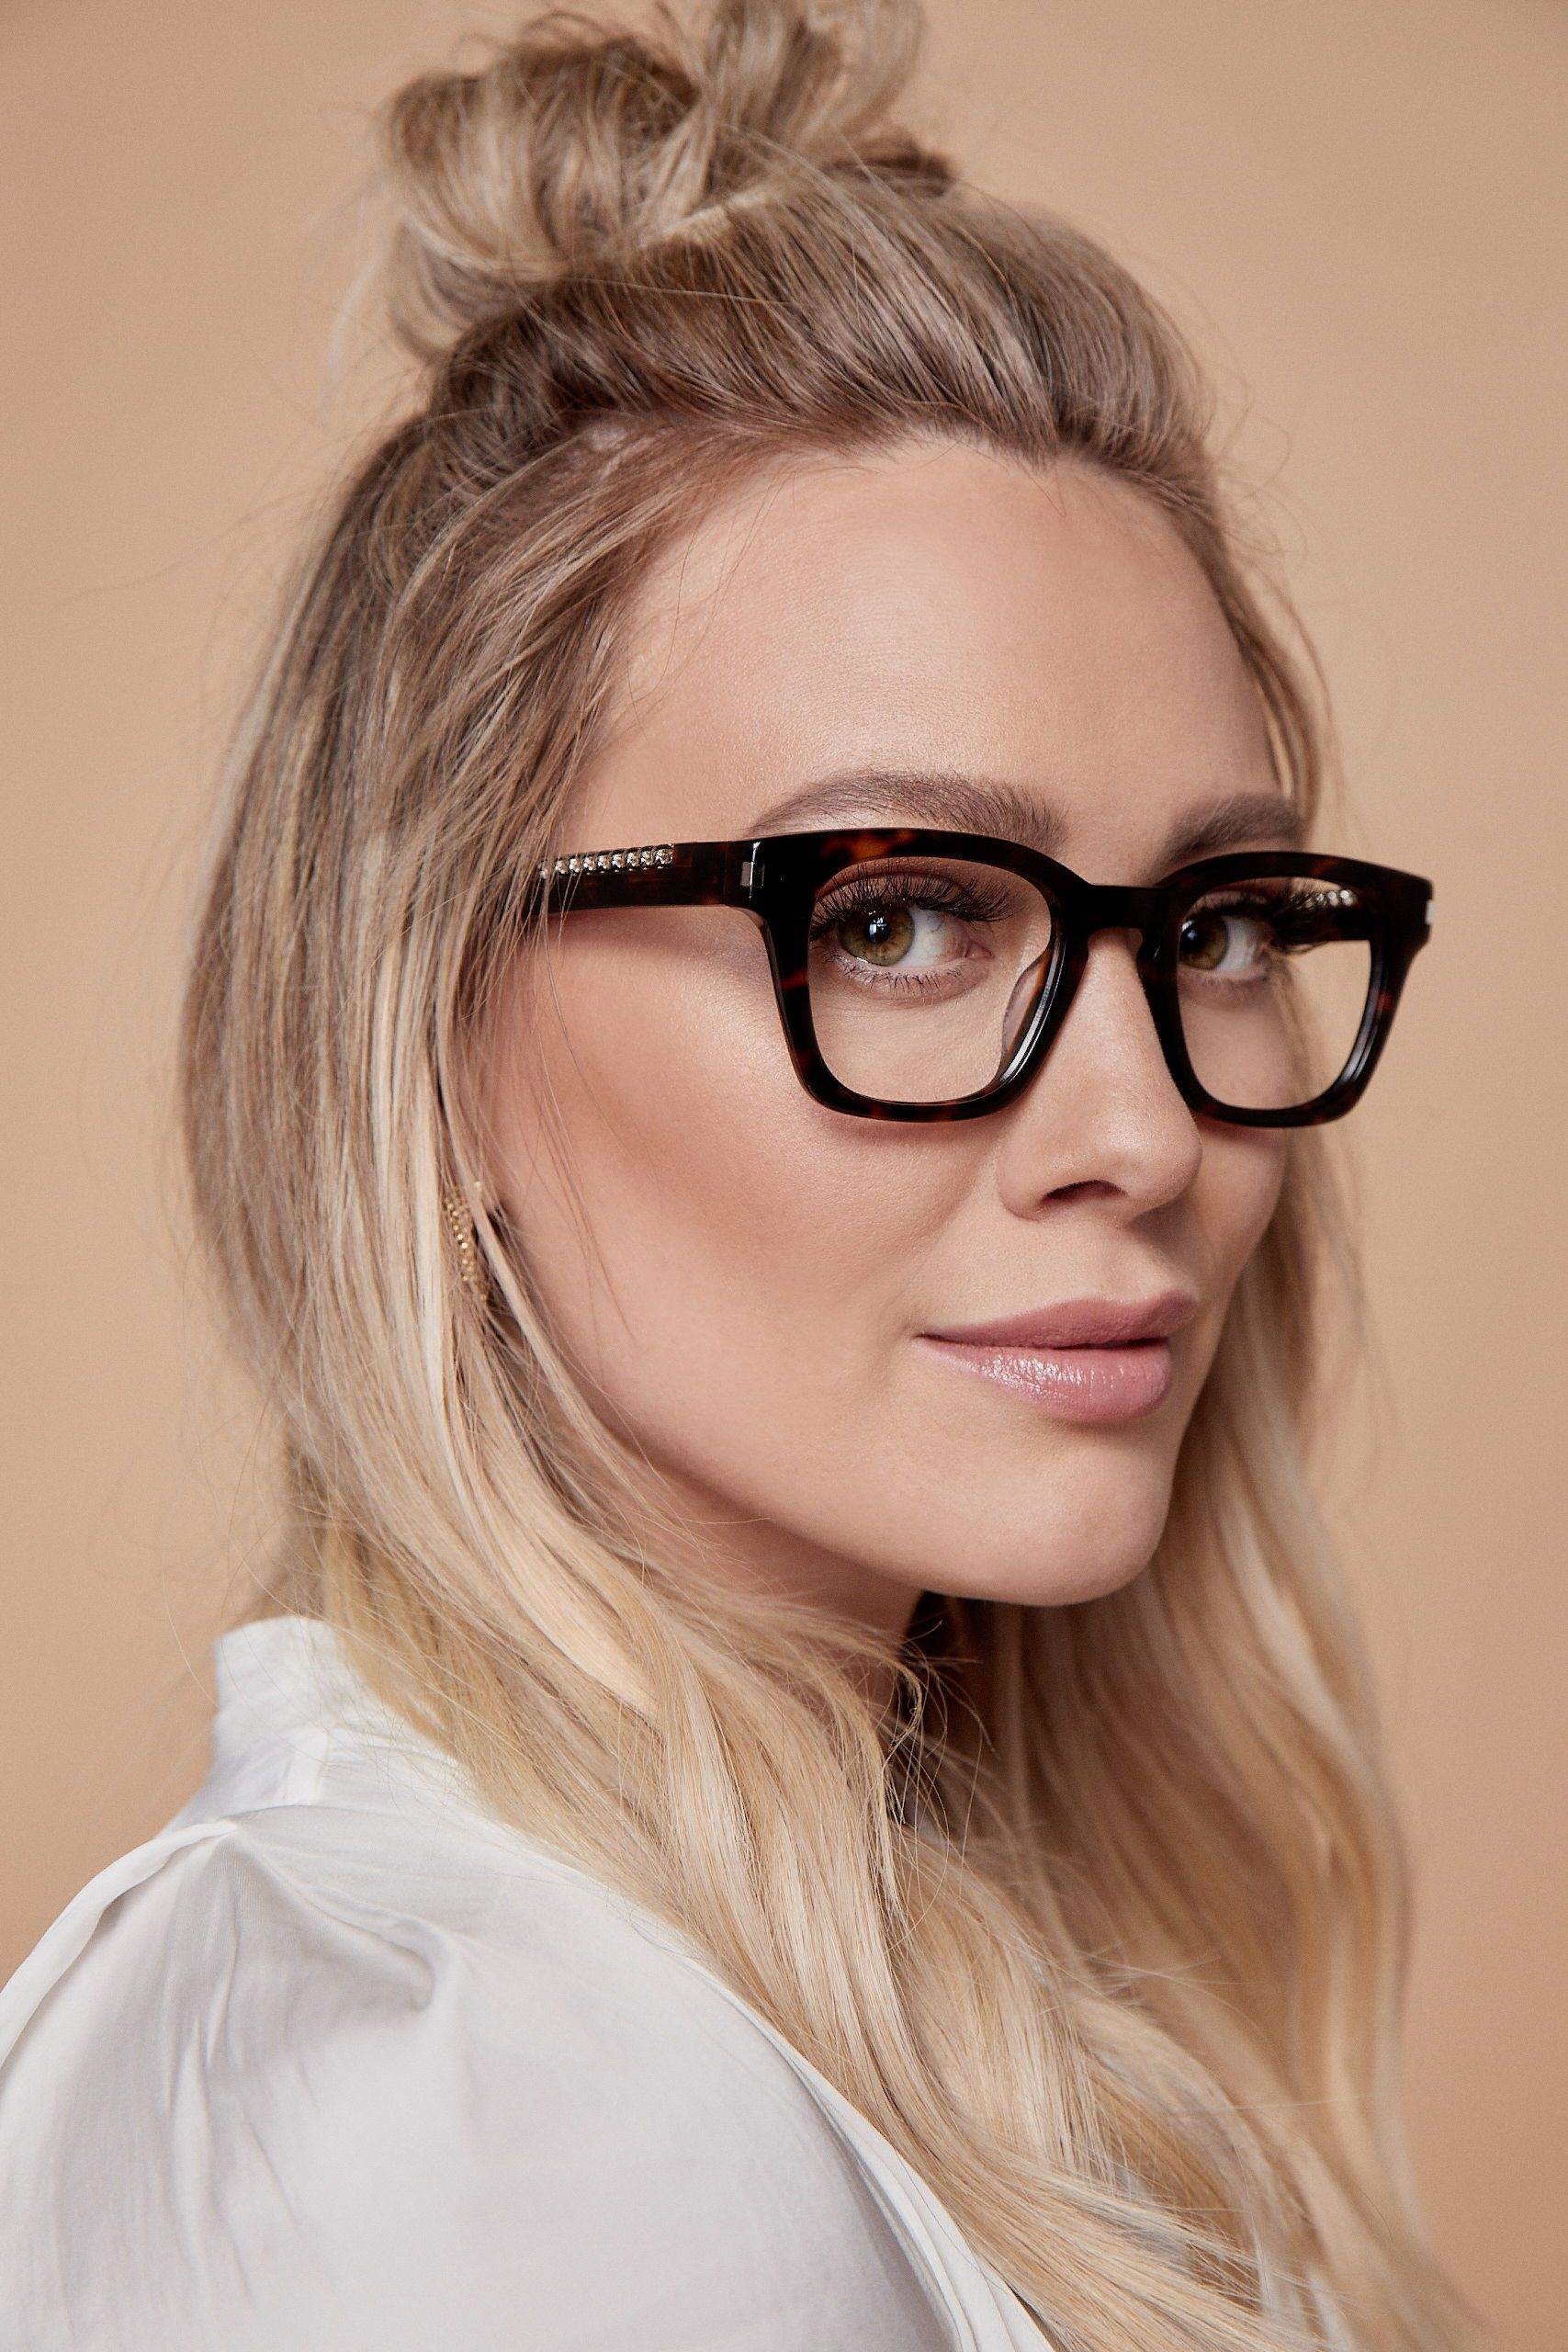 This collection is our 4th collaboration with Hilary Duff